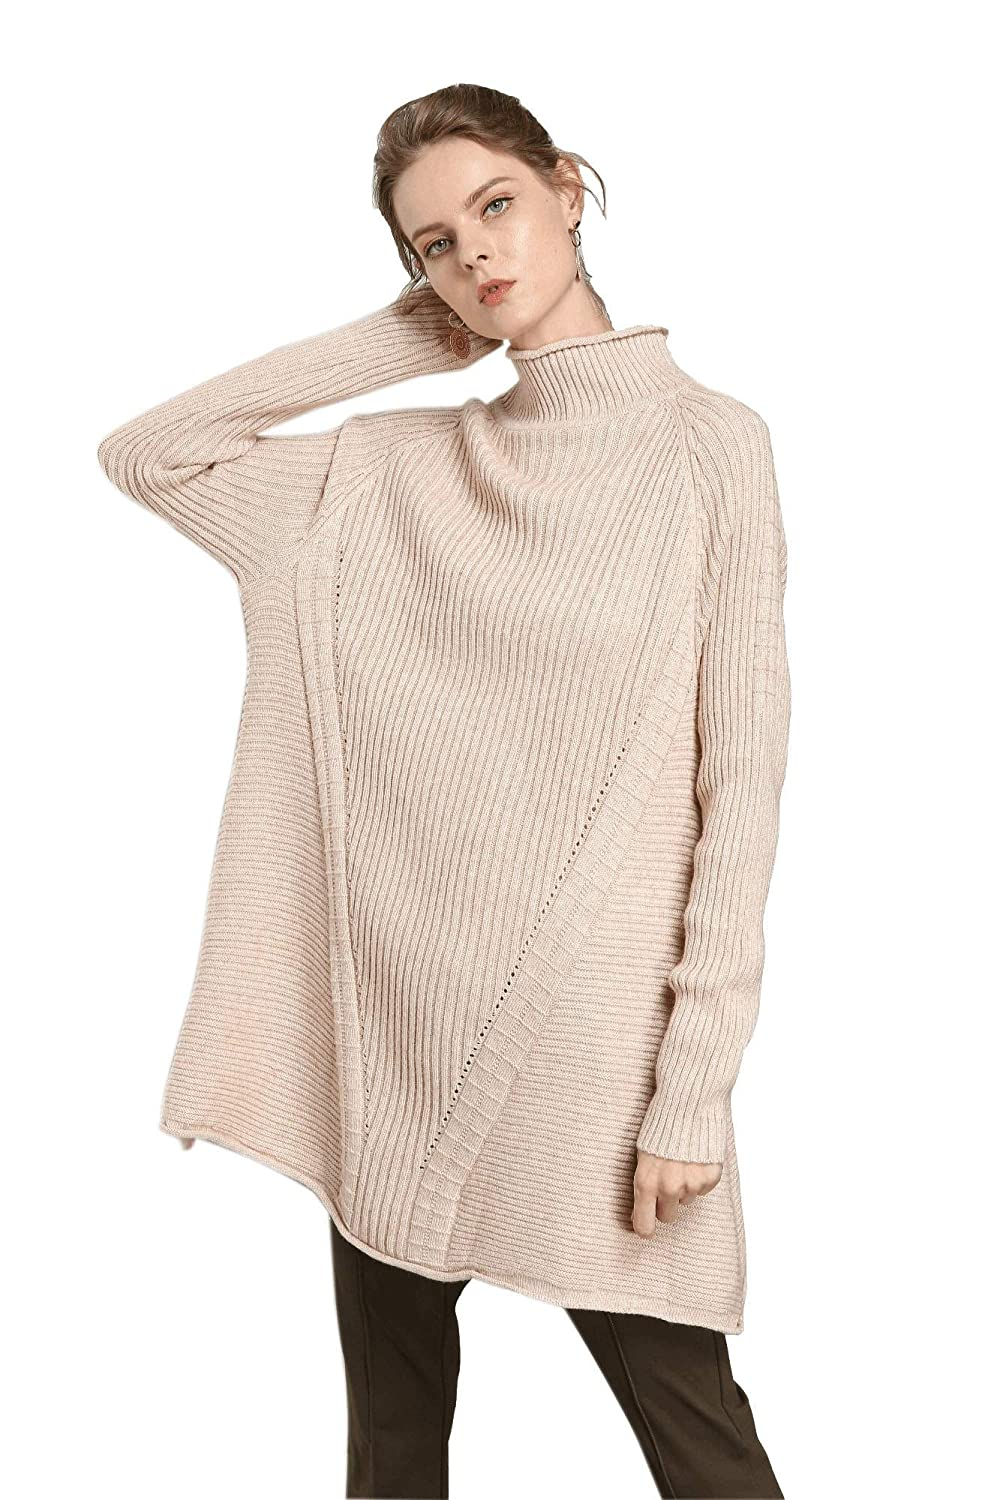 f992638b0 Women's Sweater Tunic Sweater Cashmere Sweater for Jeans and Leggings Loose  Casual Long Sleeve Curve Hem